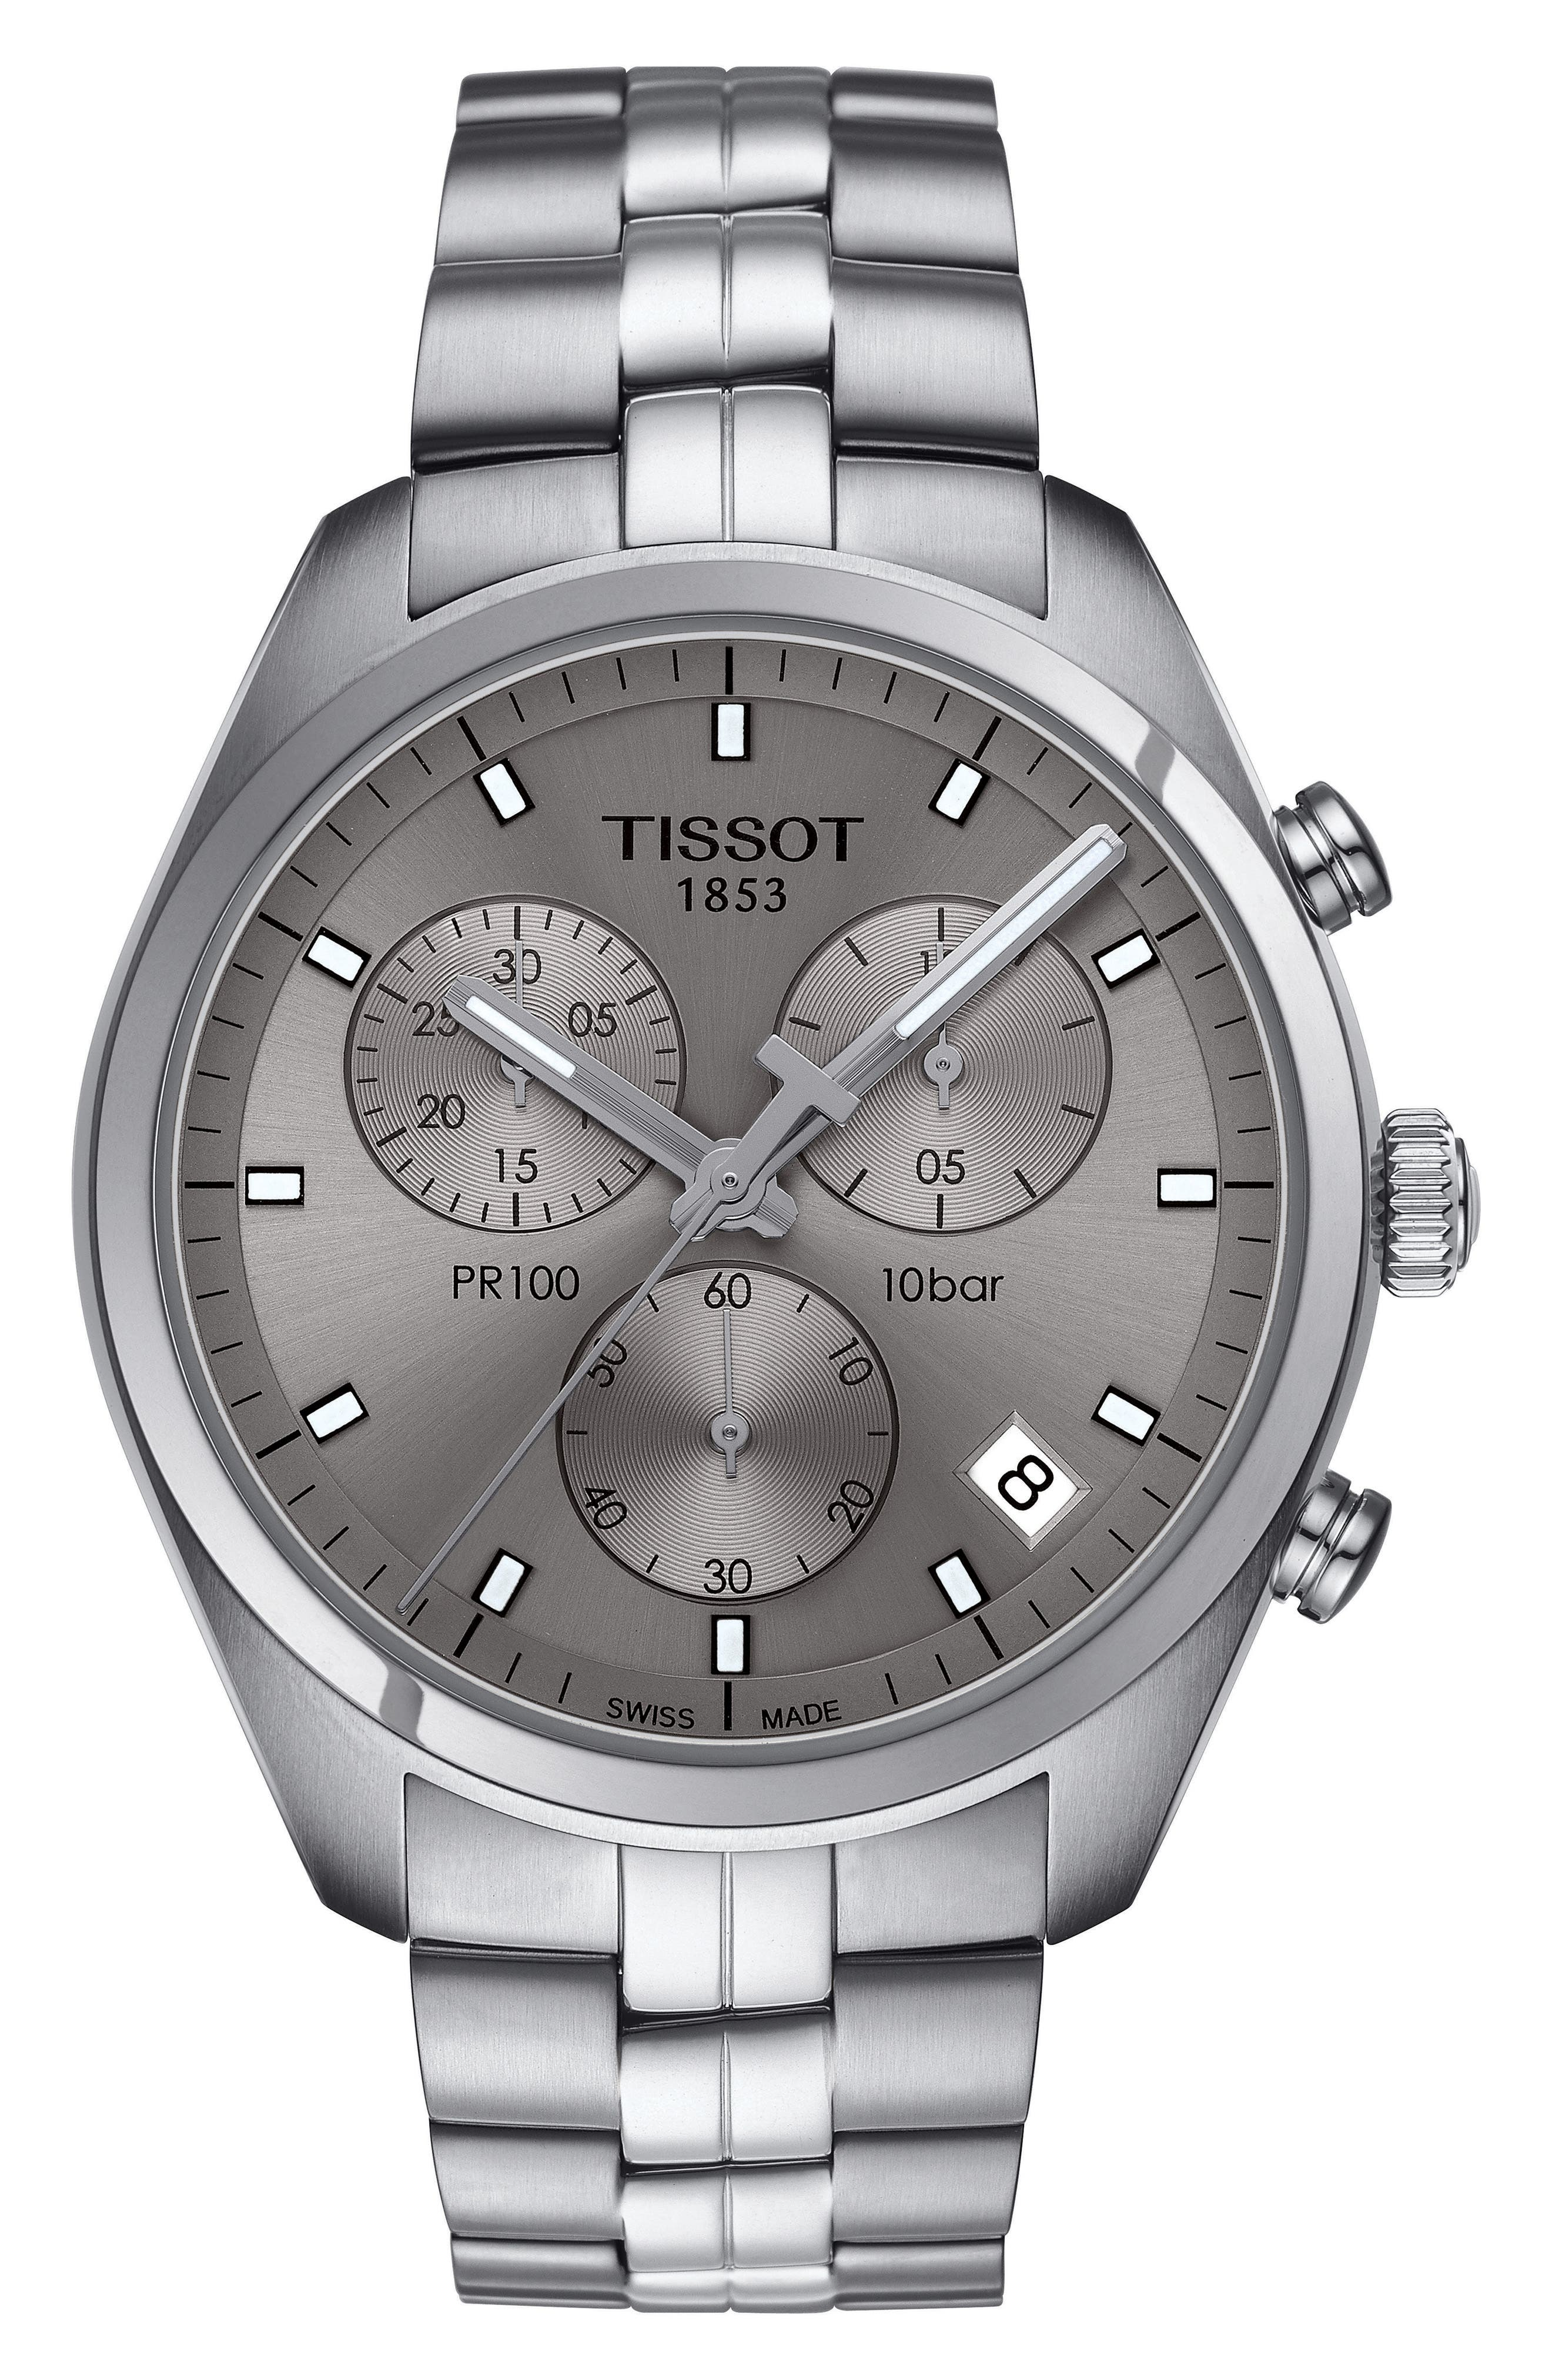 TISSOT PR100 Chronograph Bracelet Watch, 41mm